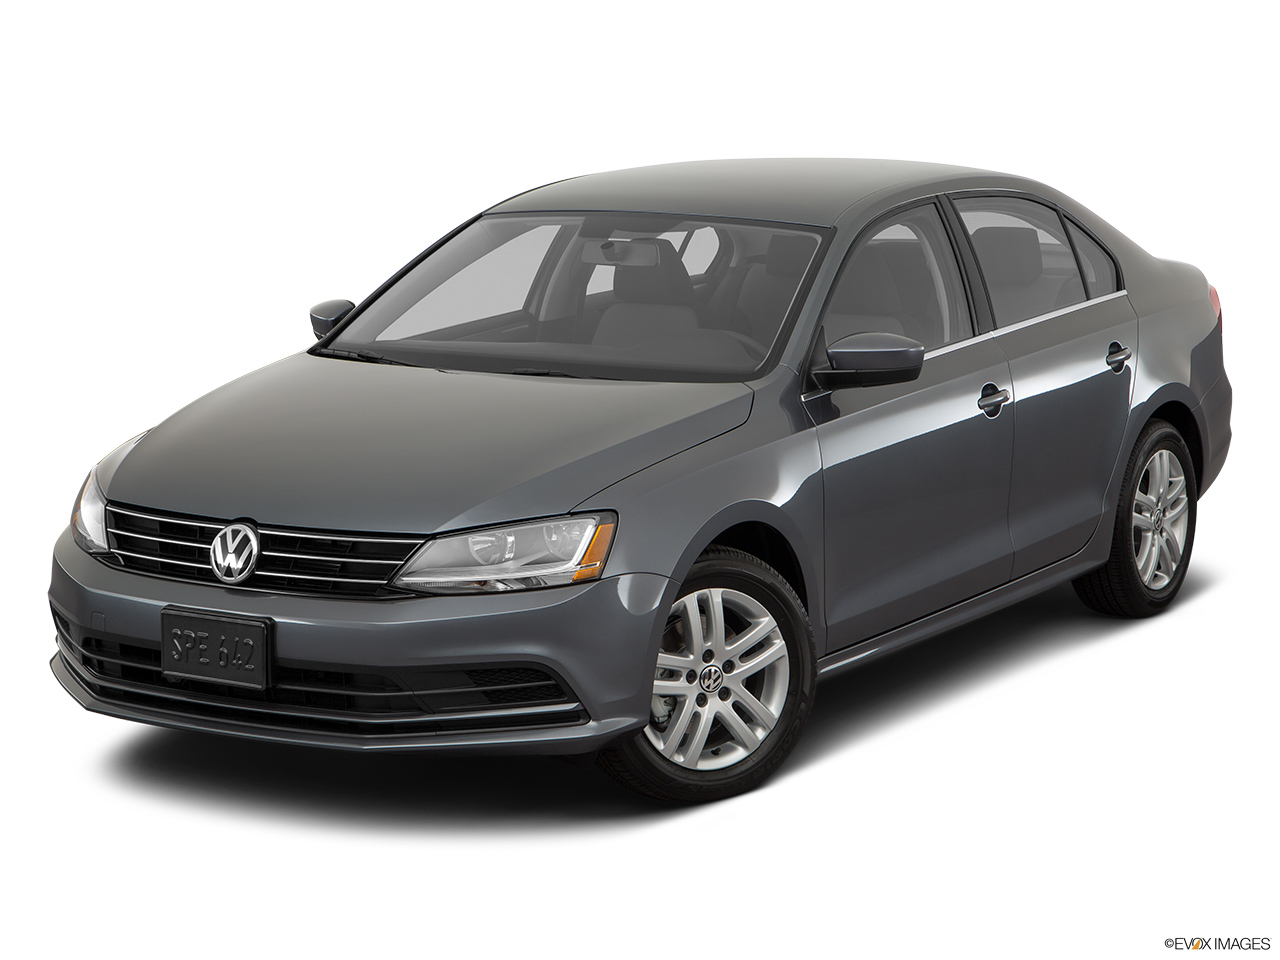 2018 Volkswagen Jetta Prices in Egypt, Gulf Specs & Reviews for Cairo, Alexandria and Giza ...